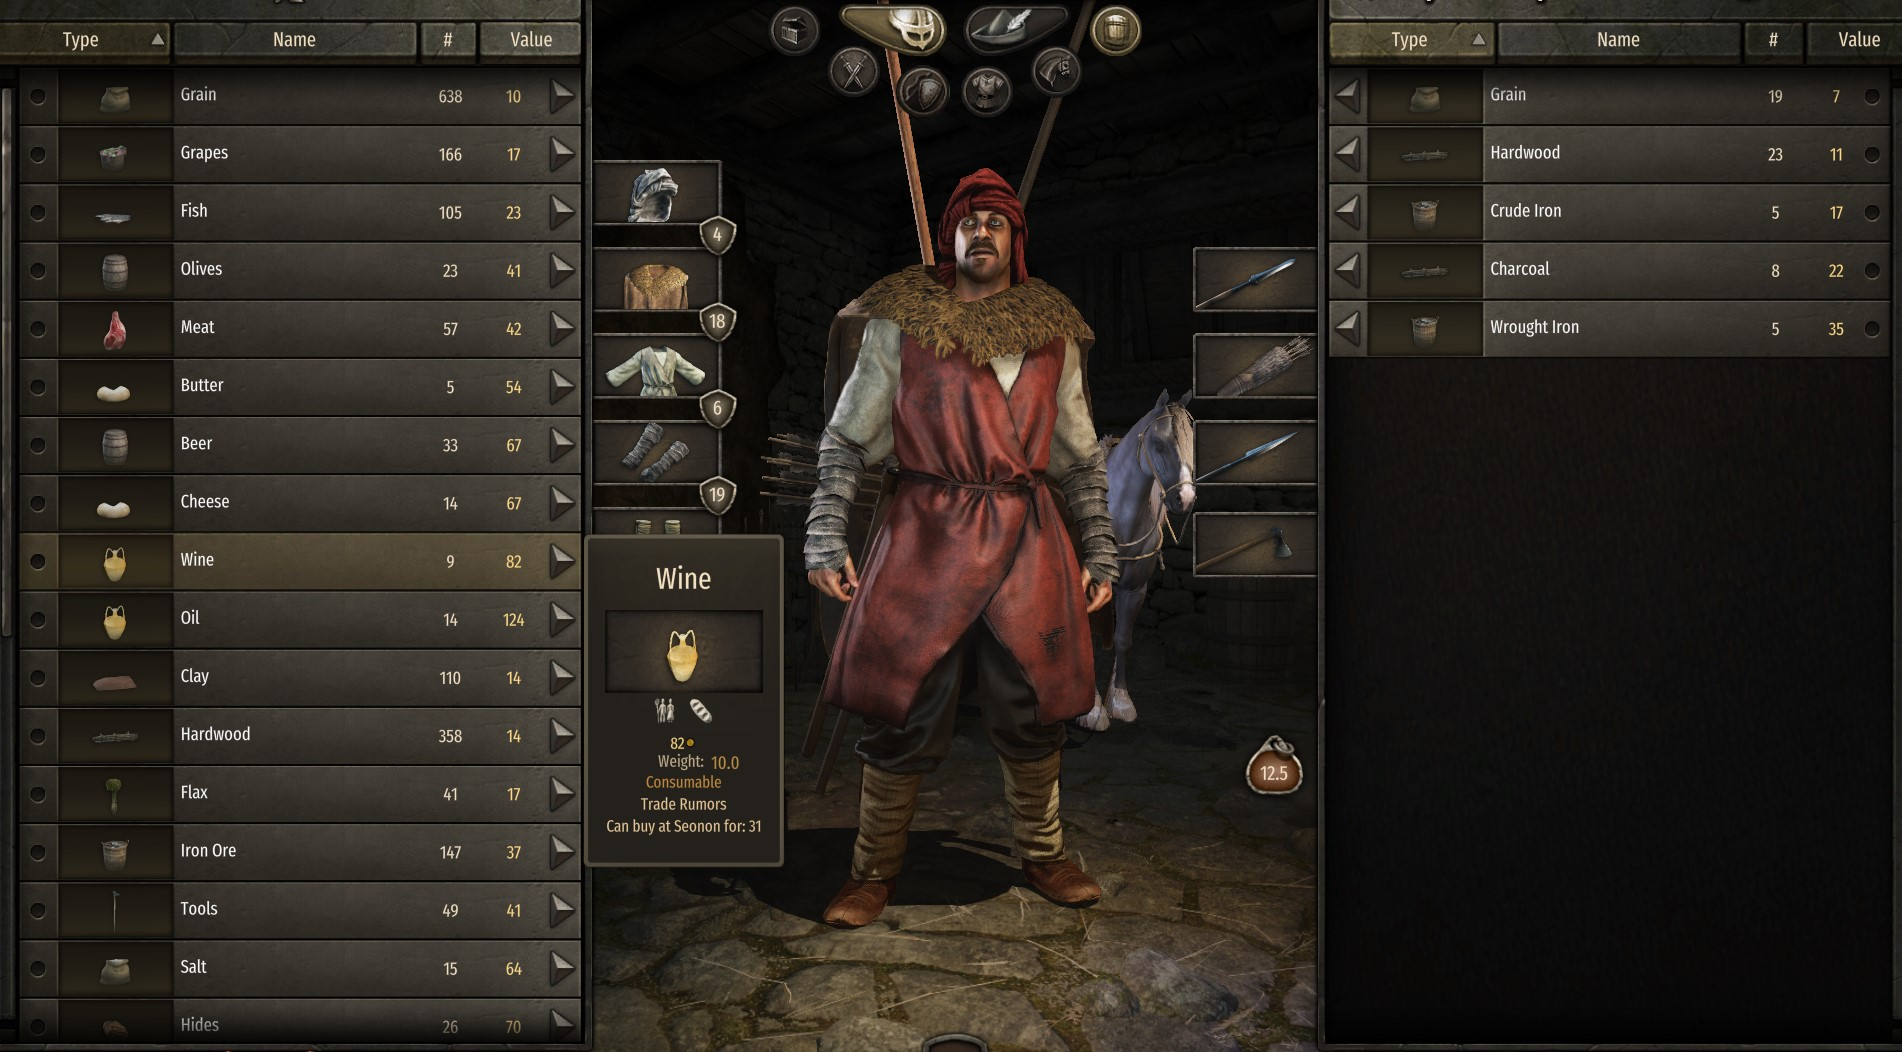 Trade guide for Mount and Blade II: Bannerlord